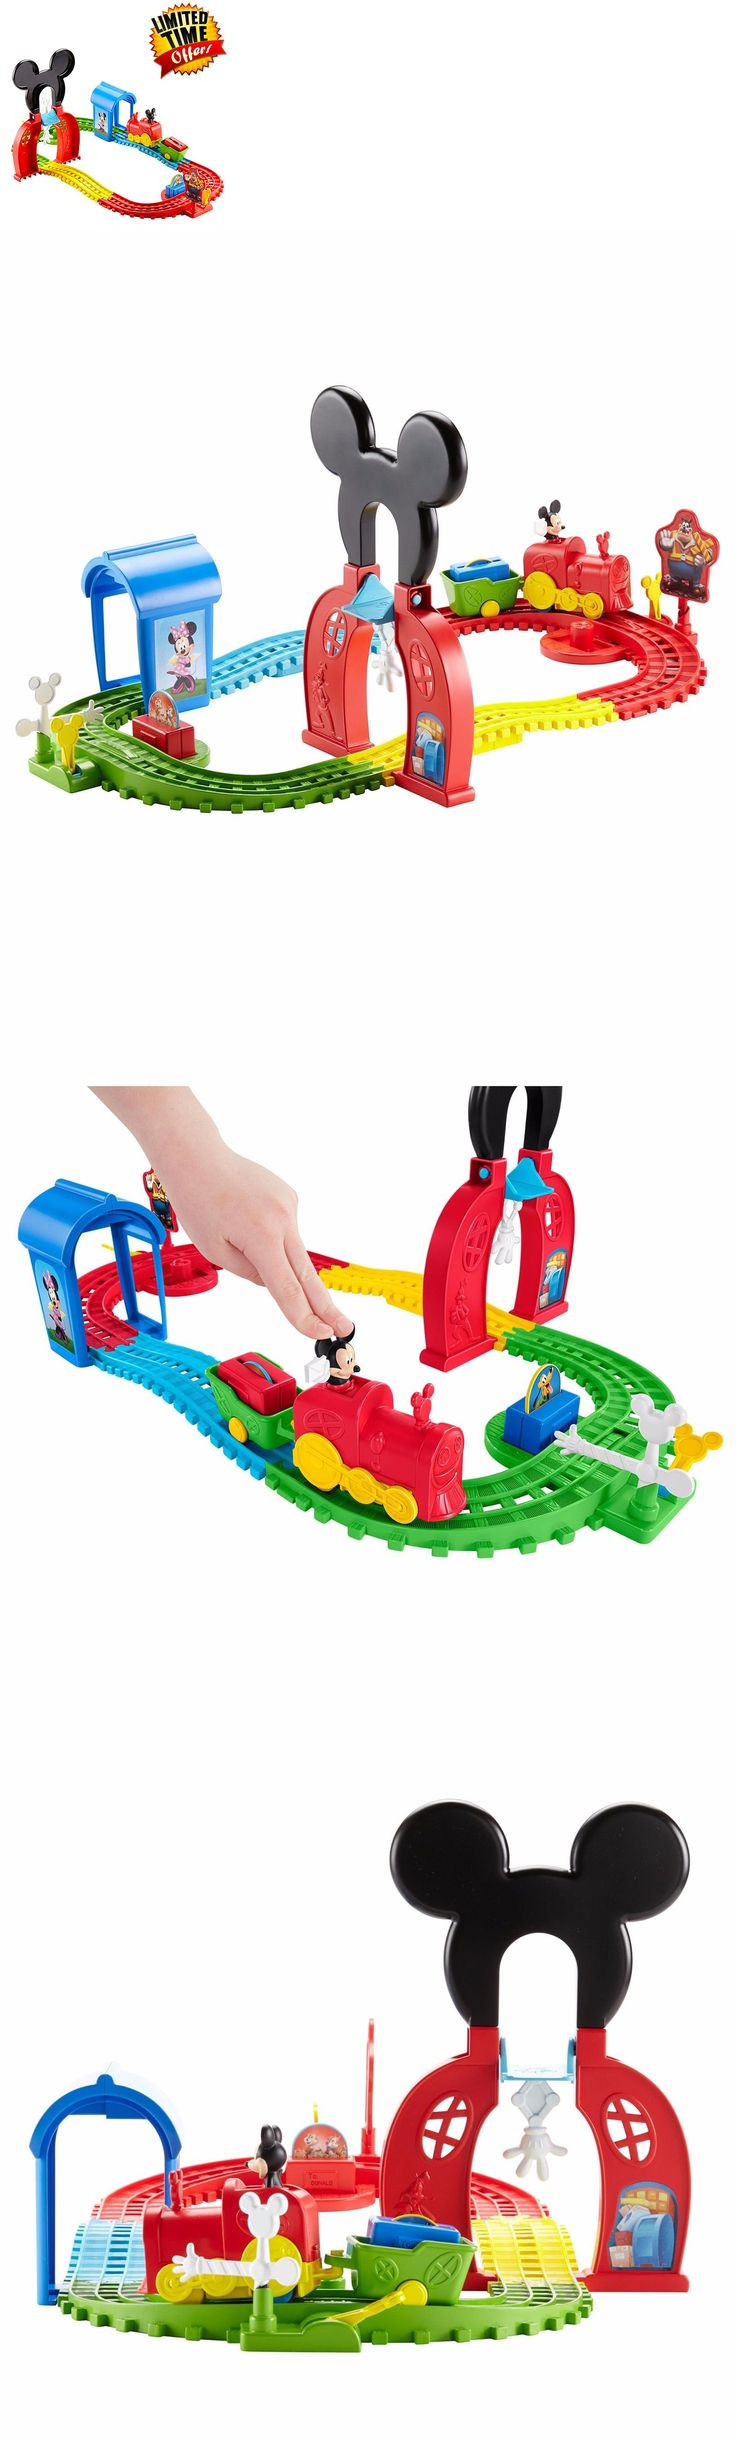 Mickey 19219: Mickey Mouse Train Express Disney Playset Toy Kids Girls Boys Gift Clubhouse Set -> BUY IT NOW ONLY: $44.25 on eBay!